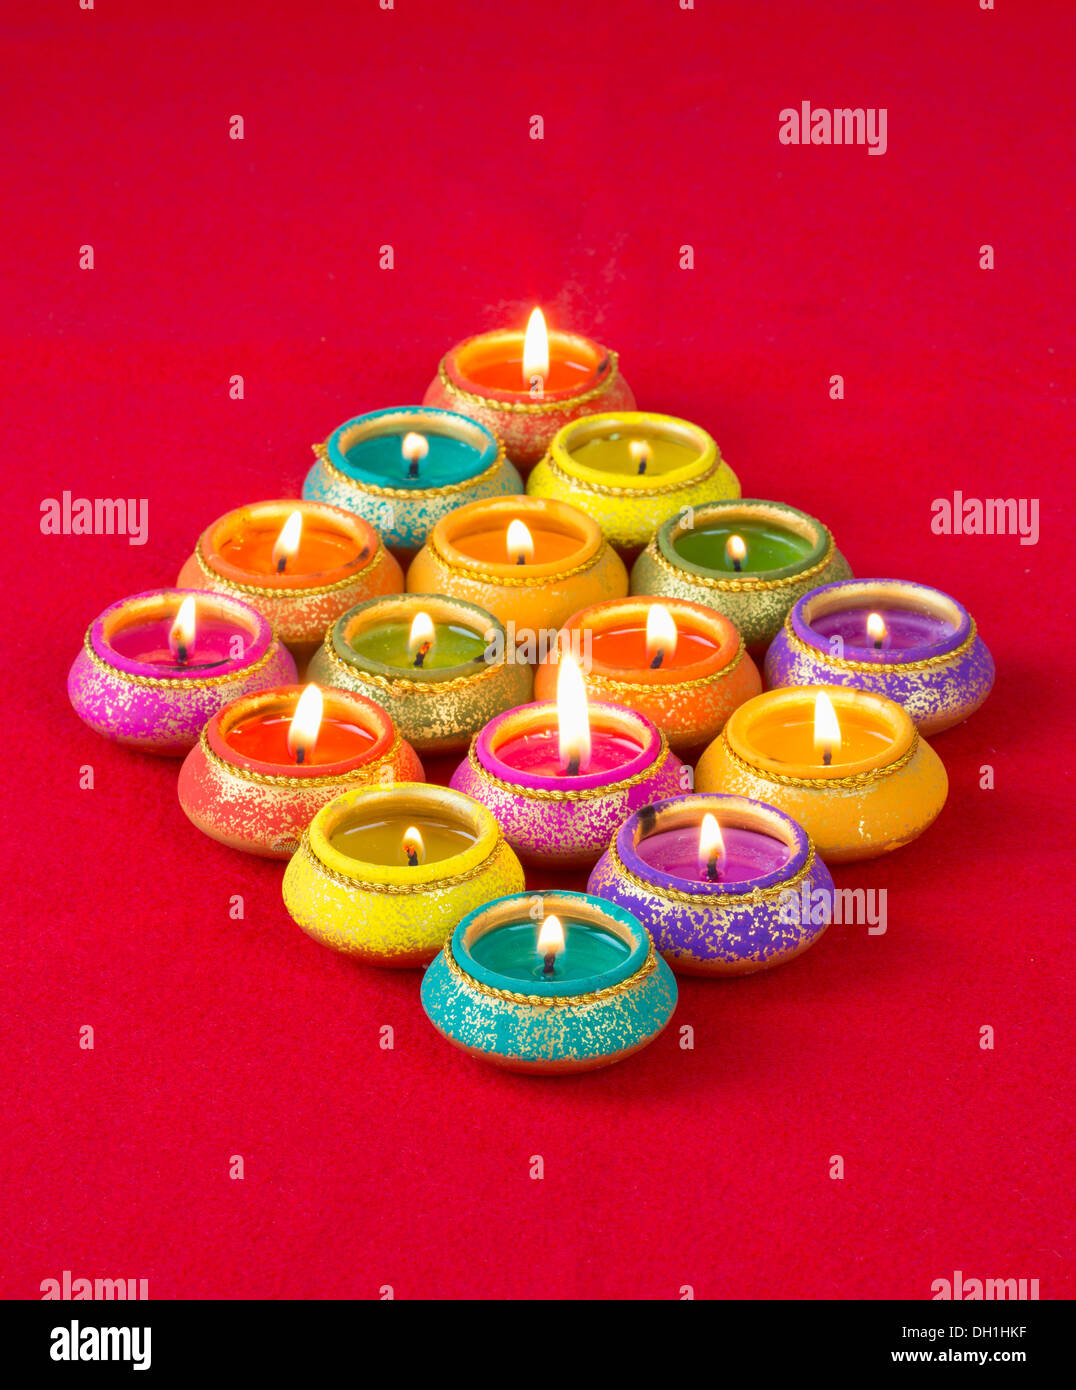 Beautifully Lit Lamps for the Hindu Diwali Festival - Stock Image